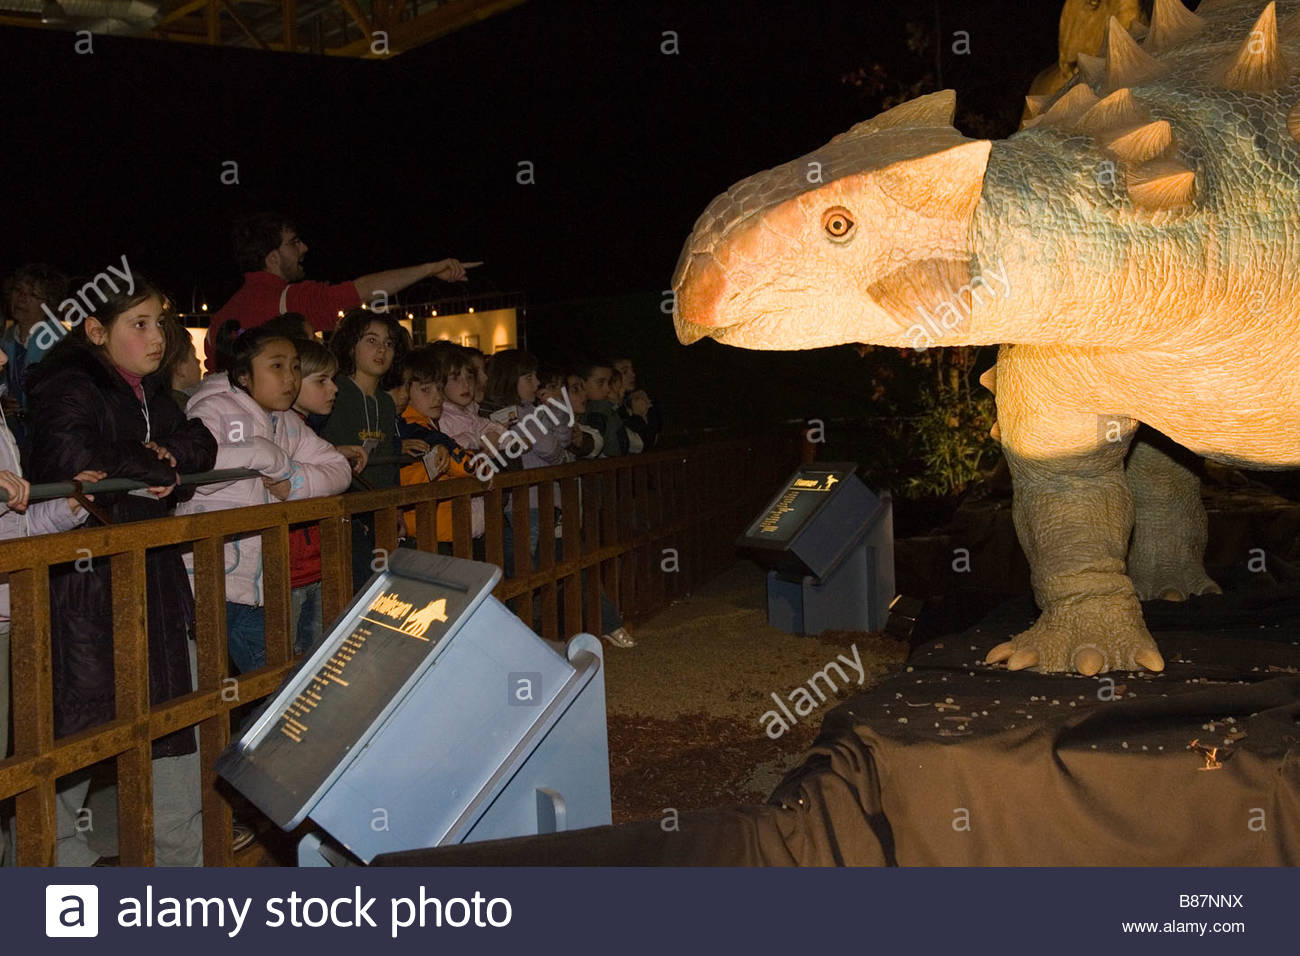 europe,italy,lombardia,cremona,exhibition of reproduction of dinosaurs,anchilosaur - Stock Image